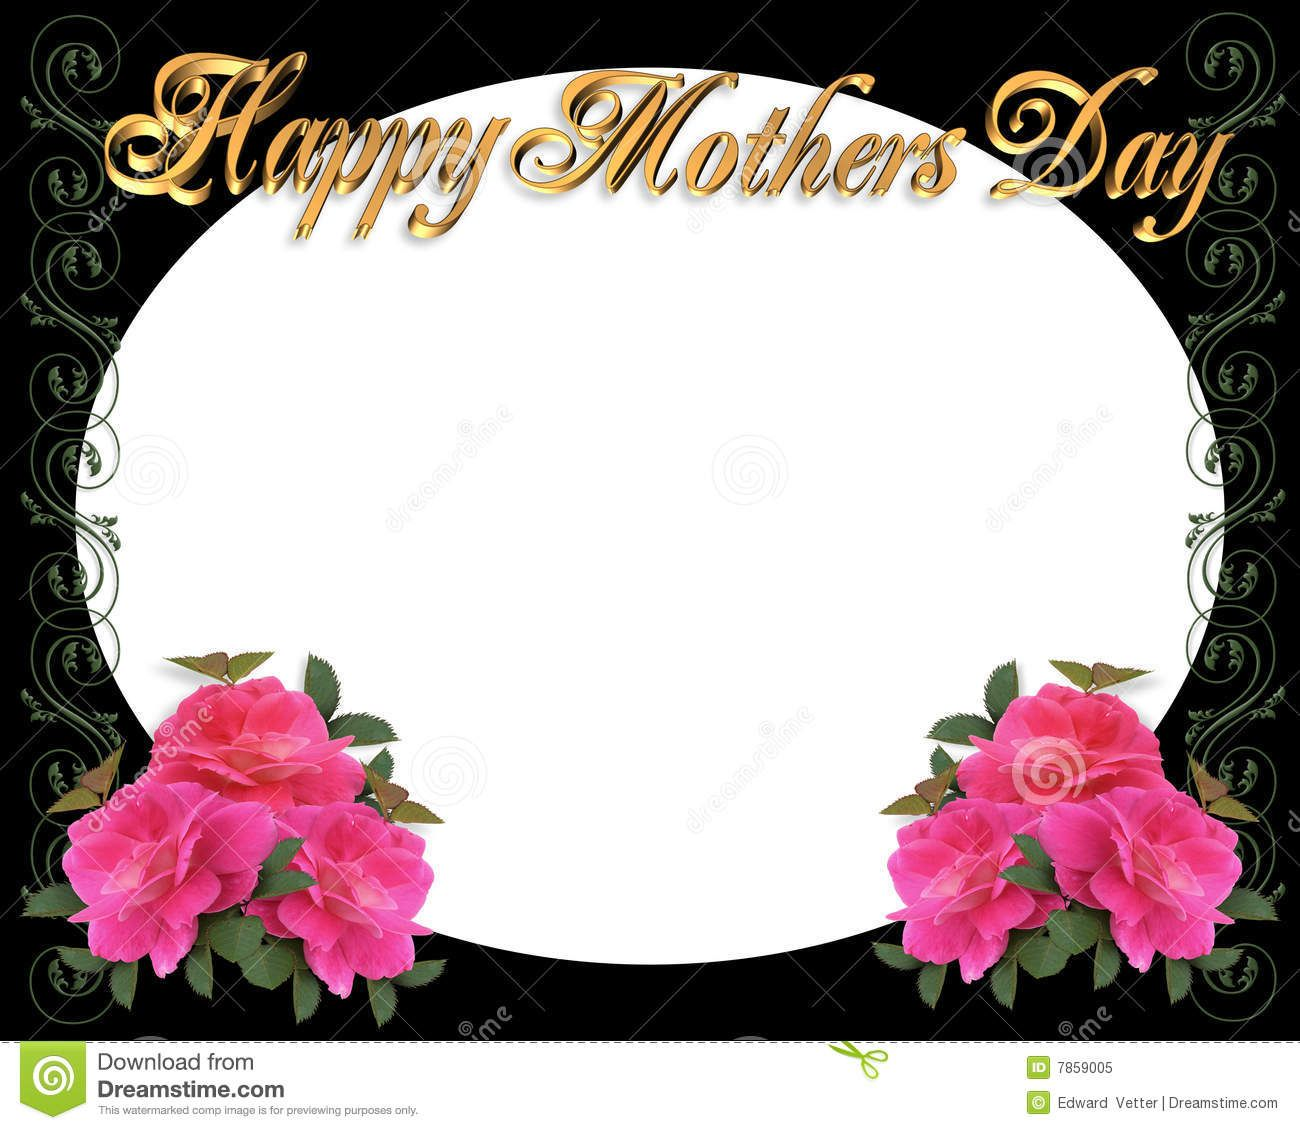 mothers day picture frames greeting cards mothers day pictures mothers day pictures frames. Black Bedroom Furniture Sets. Home Design Ideas